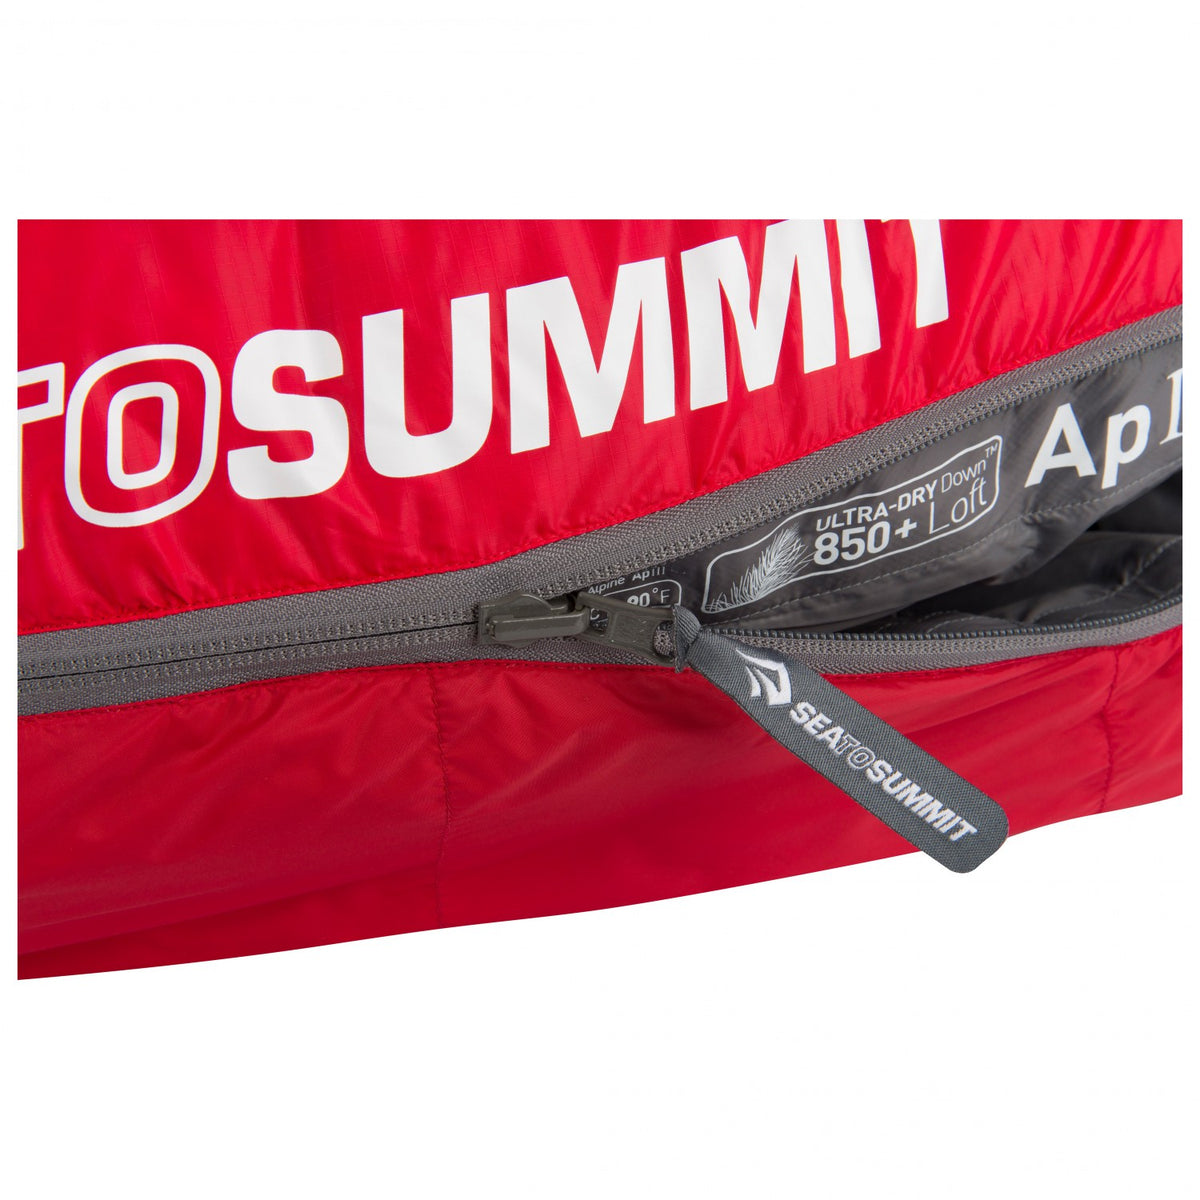 Sea to Summit Alpine III sleeping bag showing logo and zip design detail